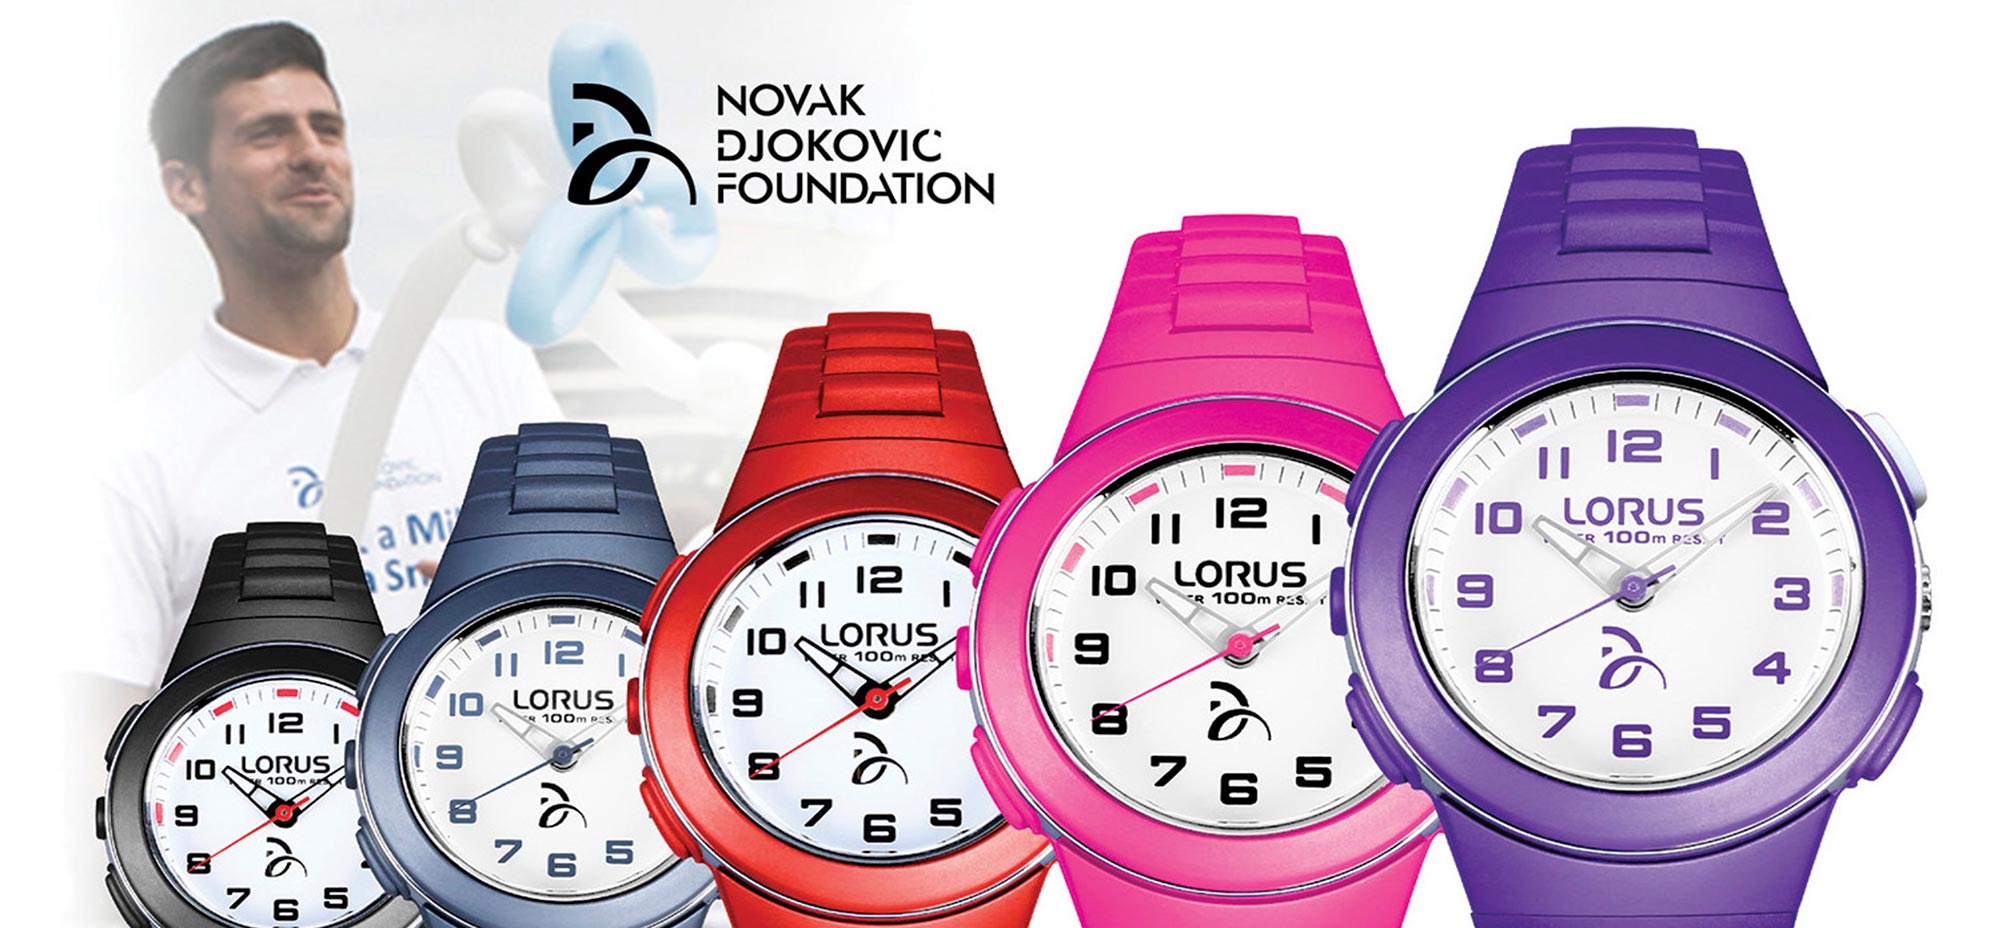 Lorus 2015 The Novak Djokovic Foundation Collection